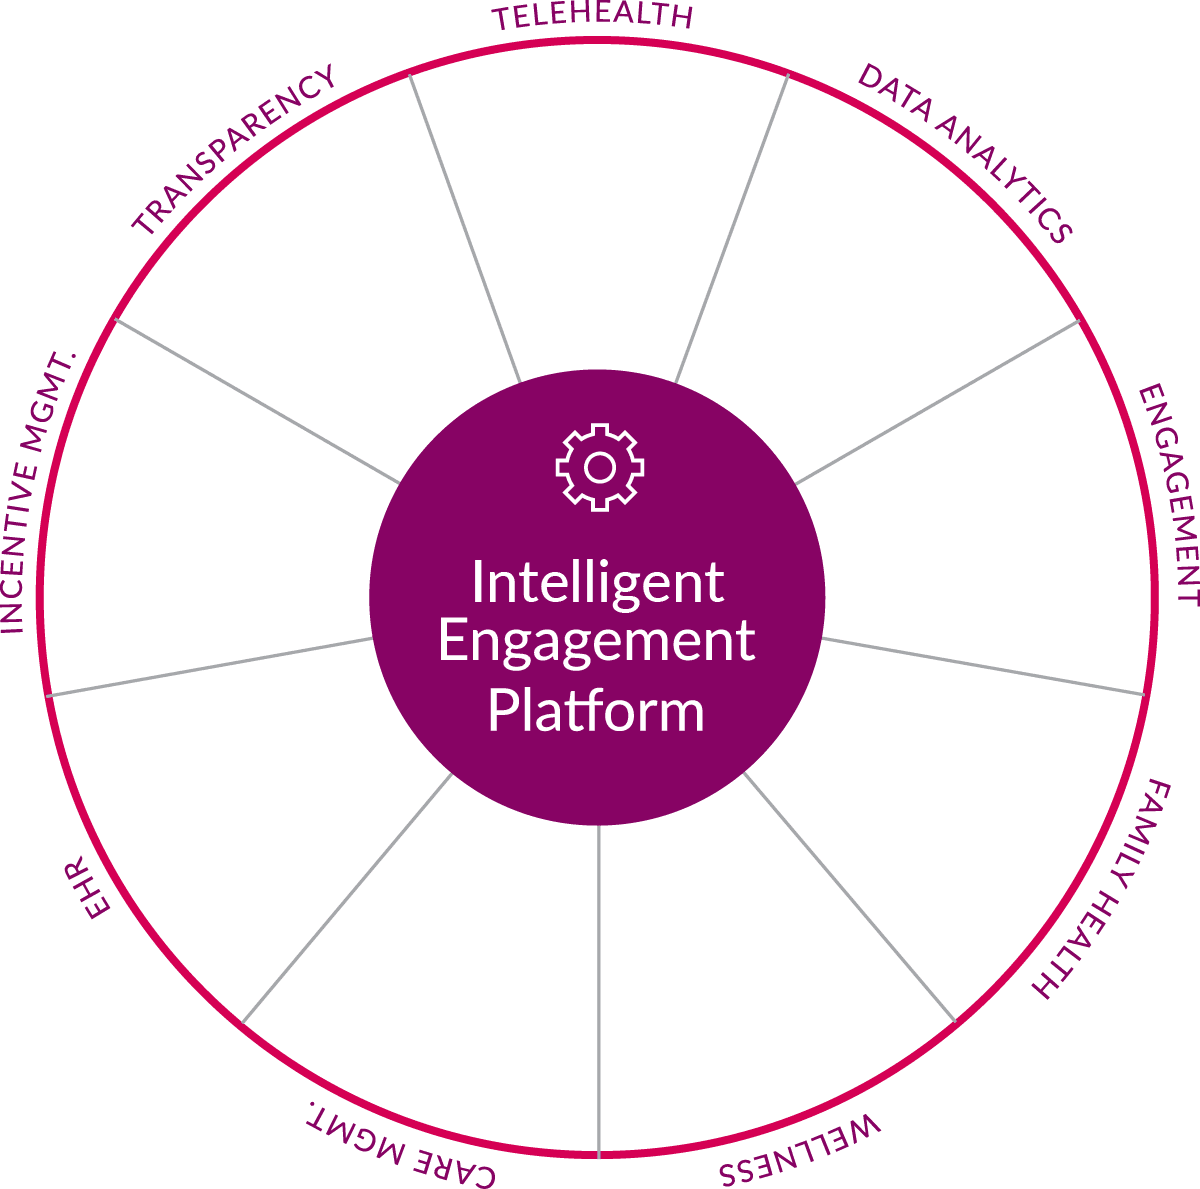 Carenet Health's Intelligent Engagement platform